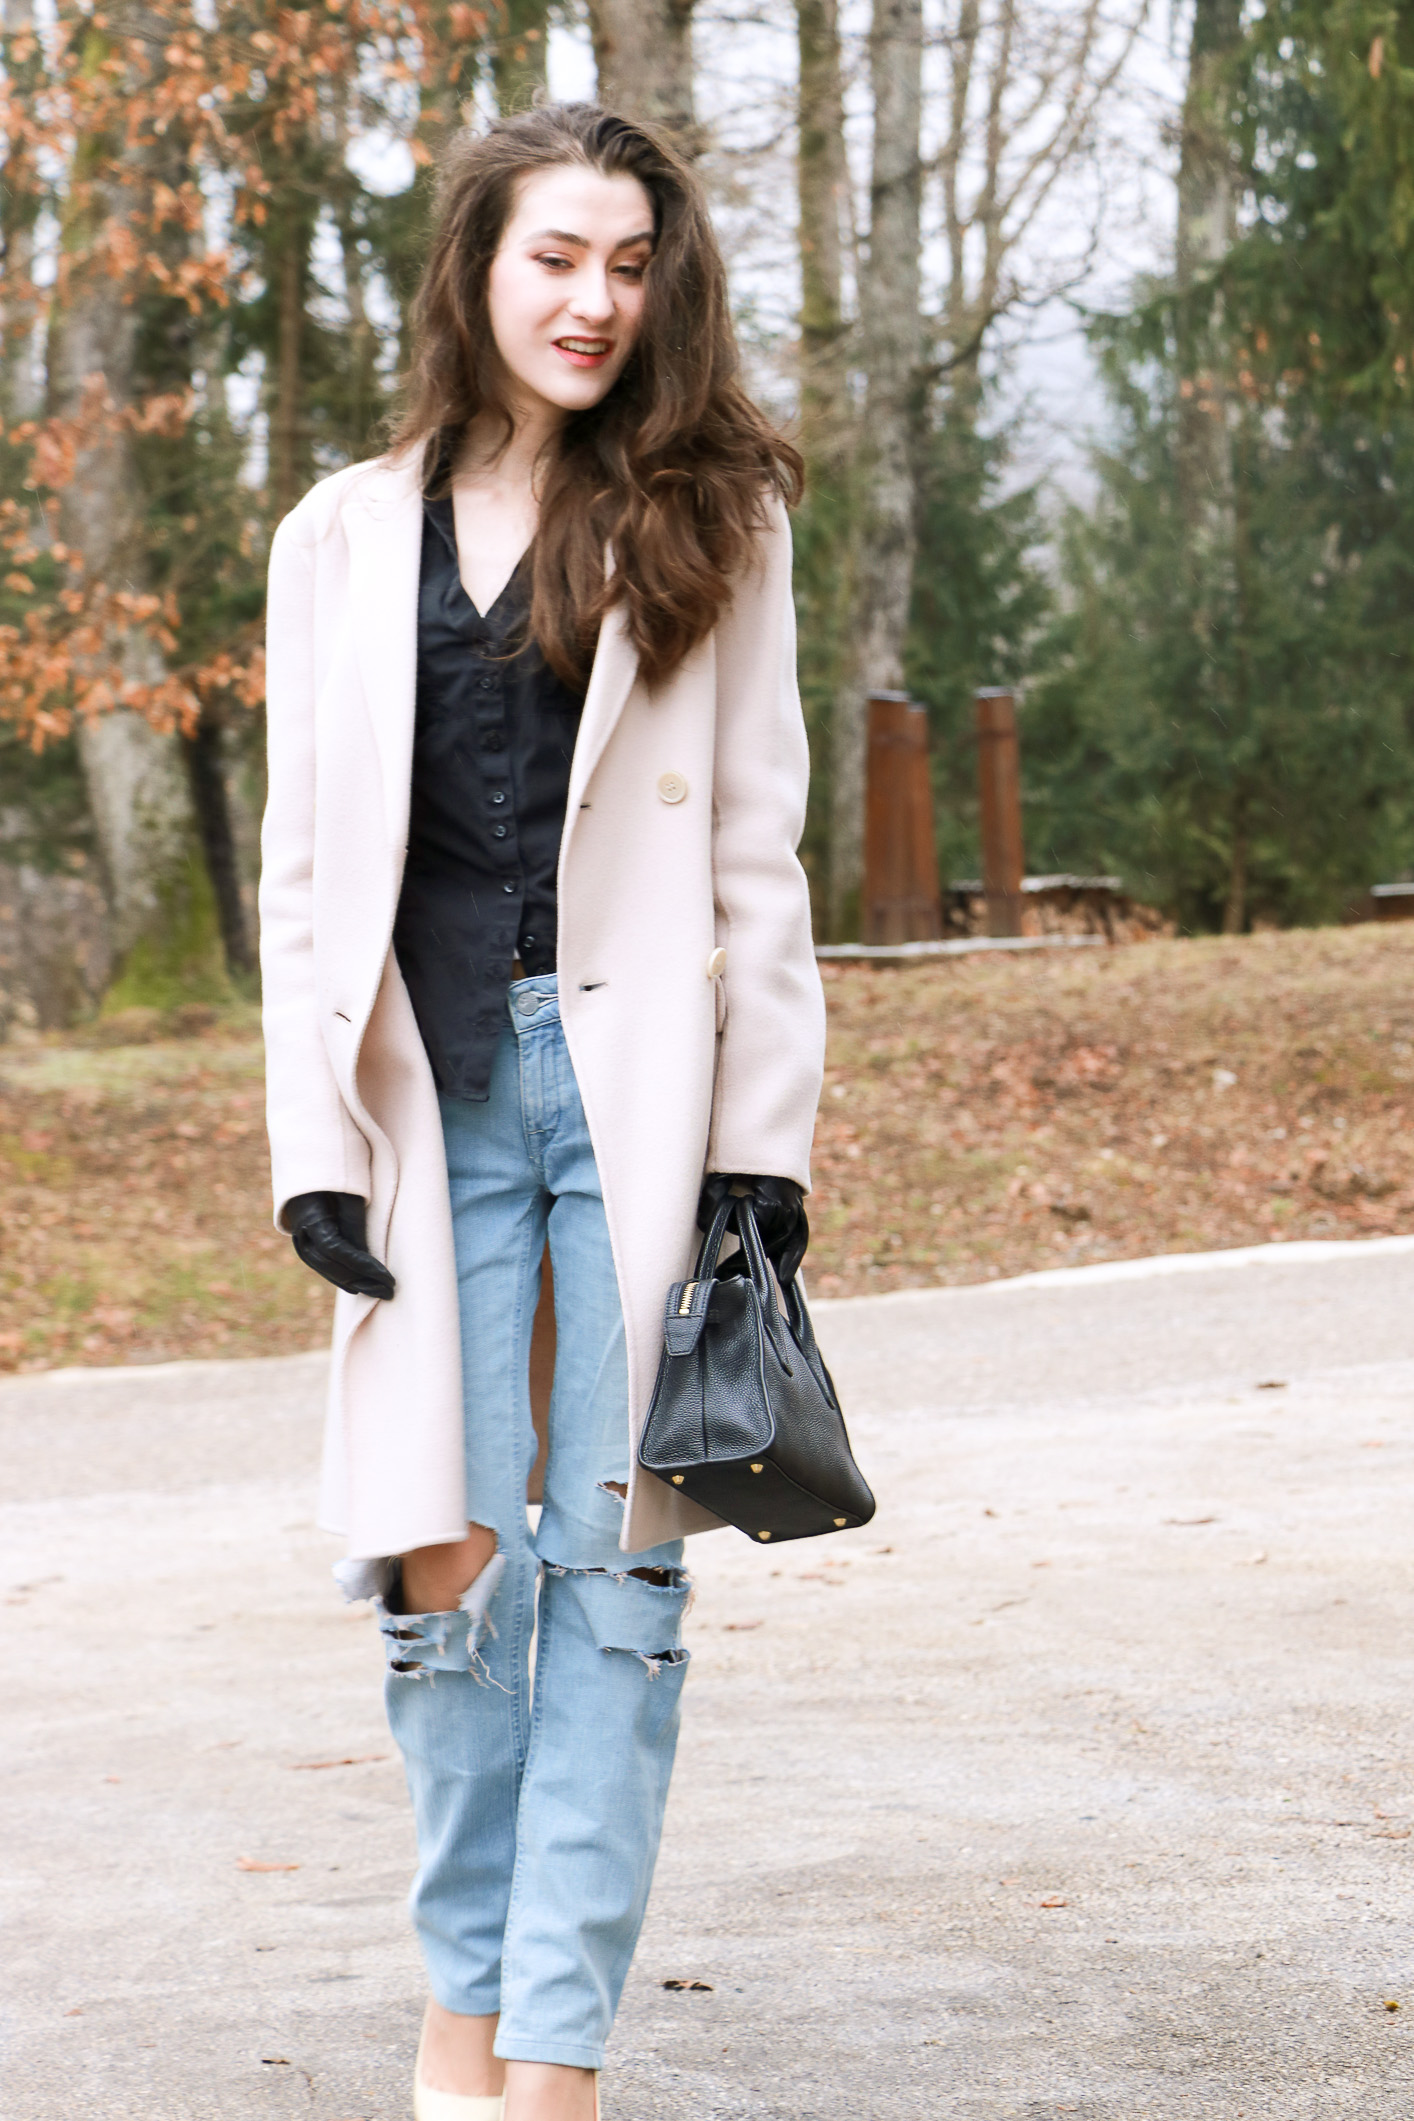 Fashion blogger Veronika Lipar of Brunette From Wall Street sharing how to DIY the blue ripped jeans for a chic Casual Friday Look